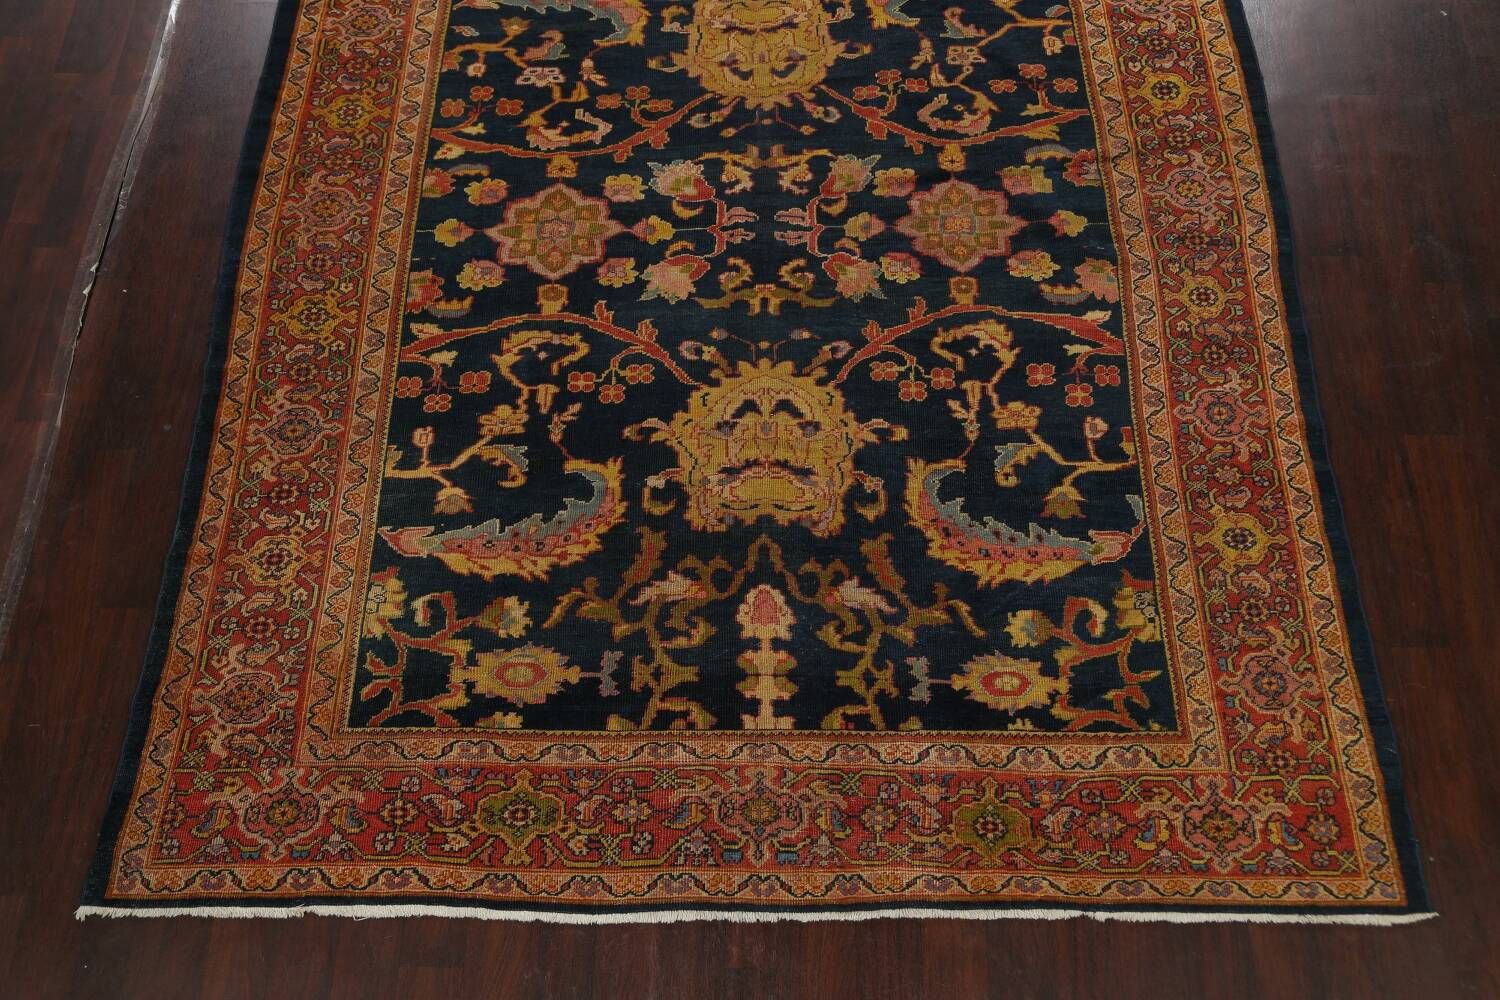 Pre-1900 Antique Vegetable Dye Sultanabad Persian Area Rug 9x10 image 8